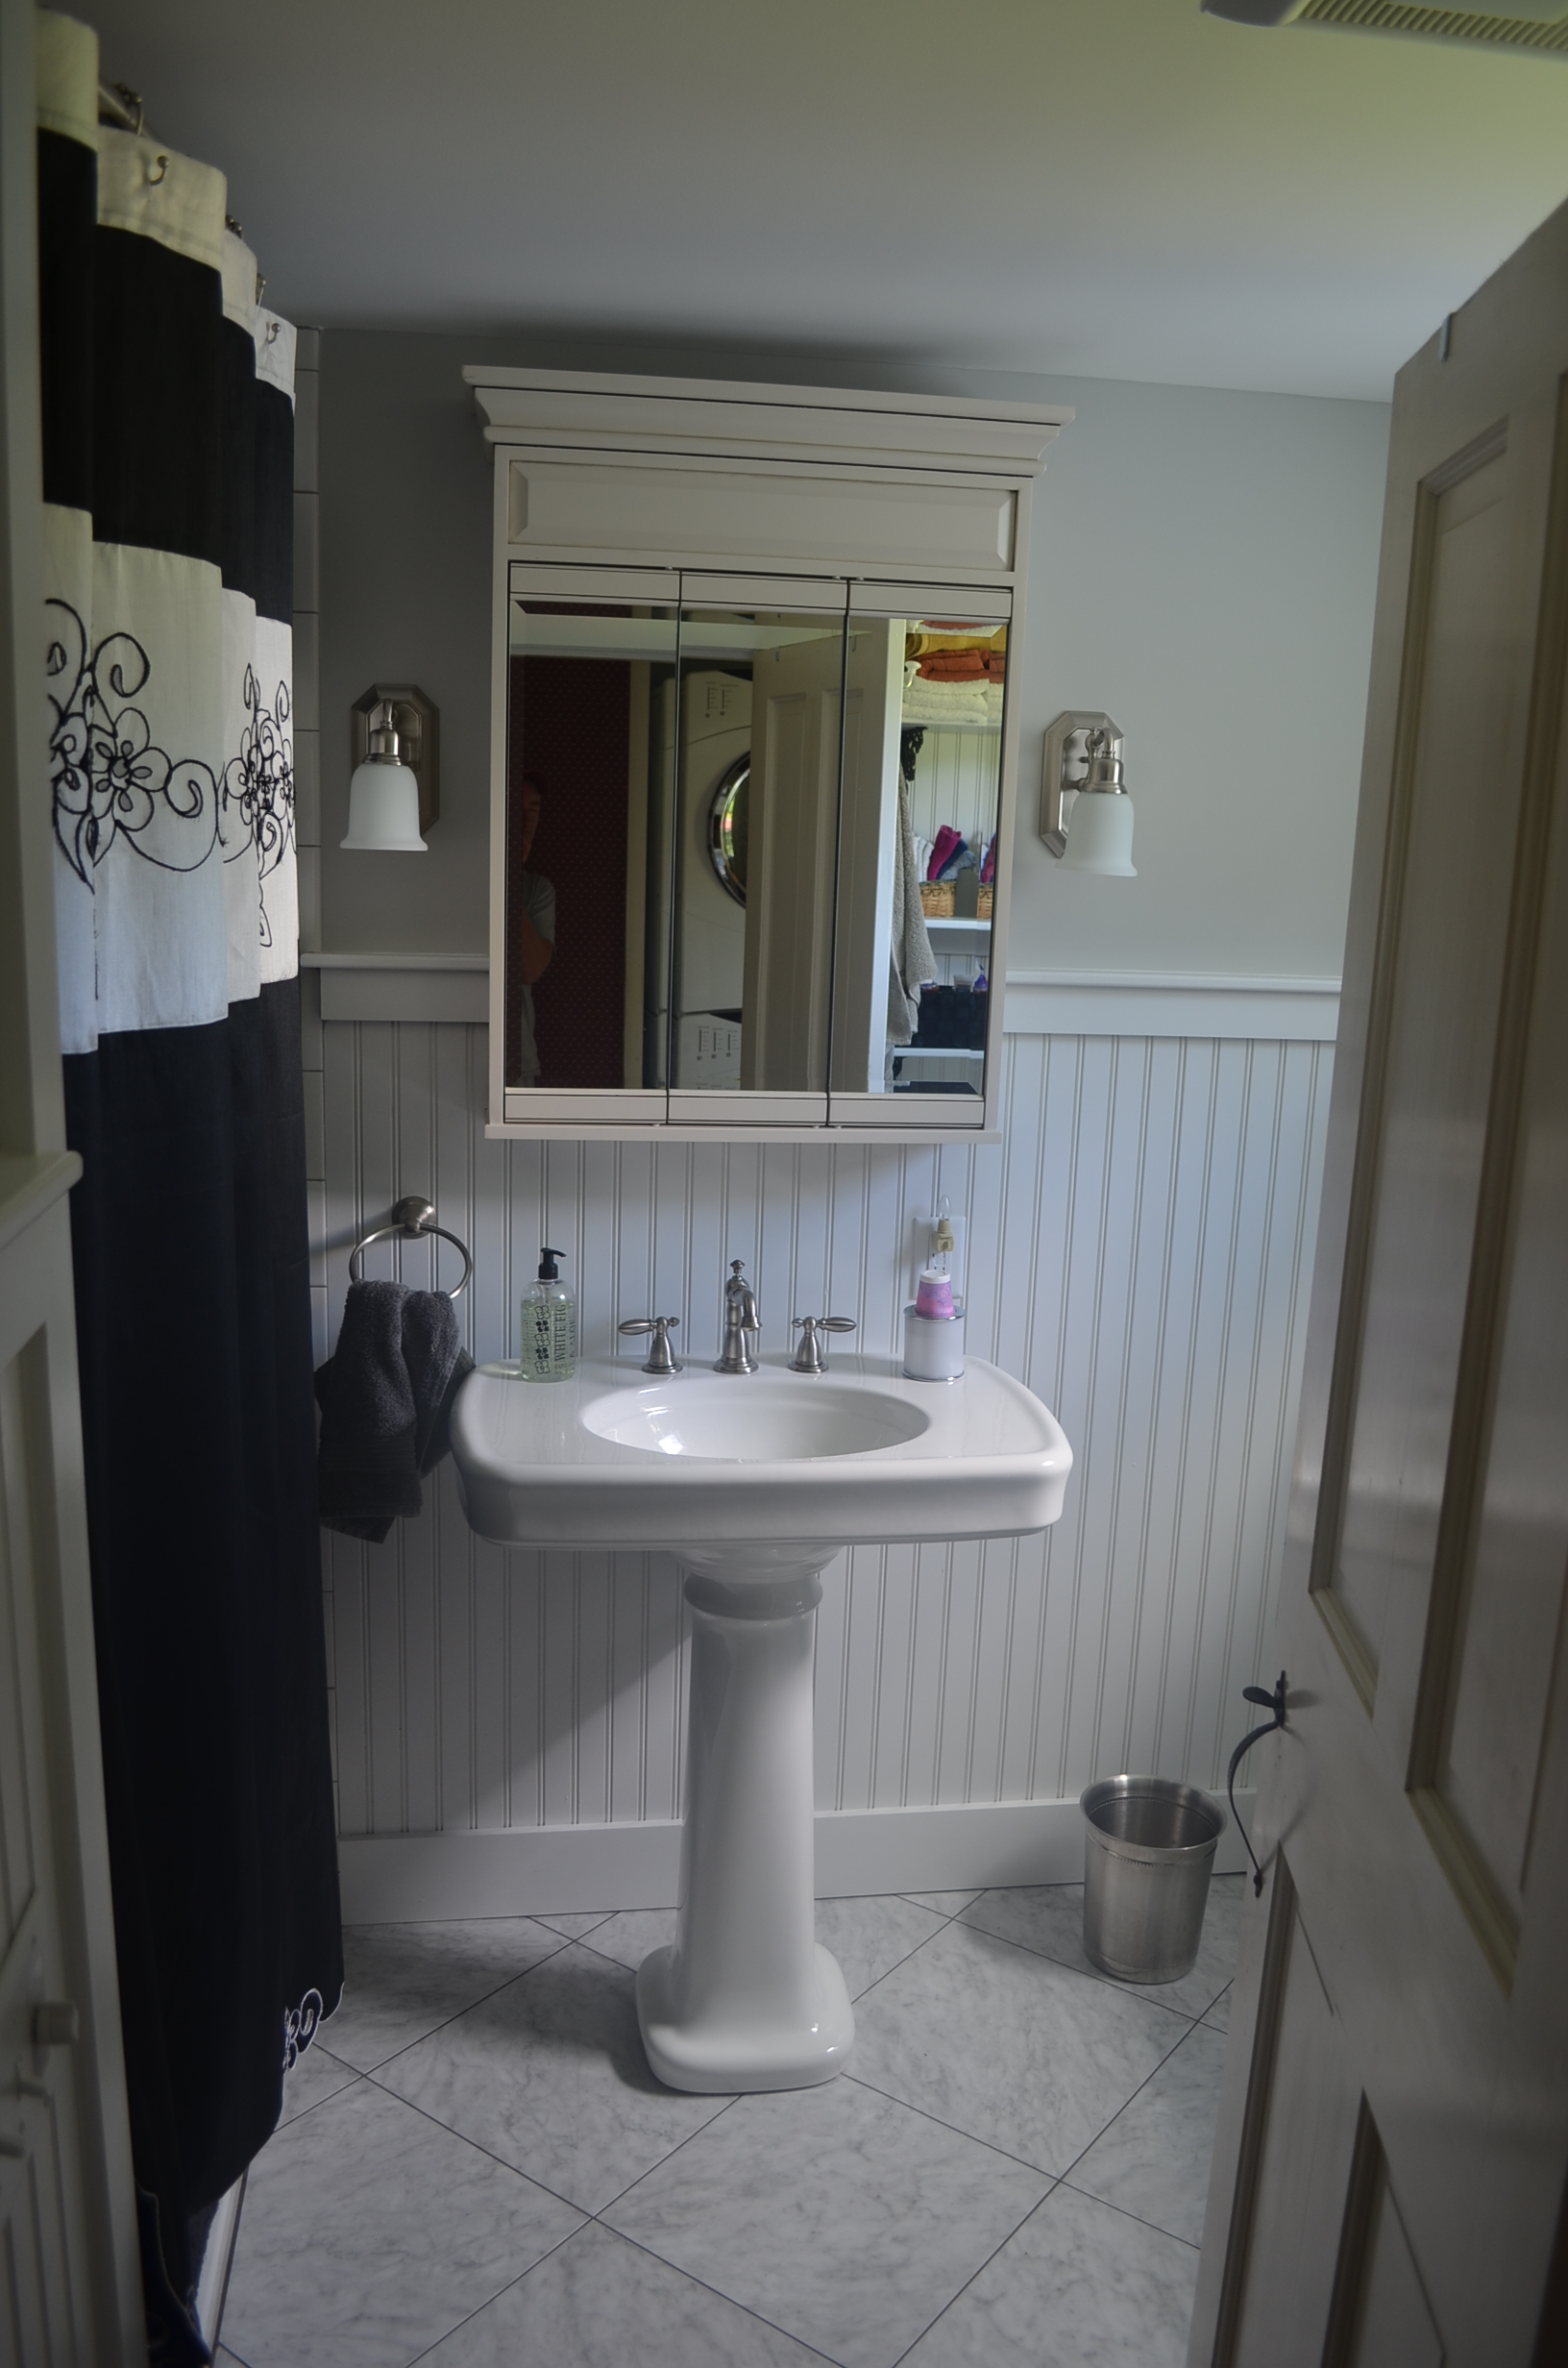 NH bathroom remodeling